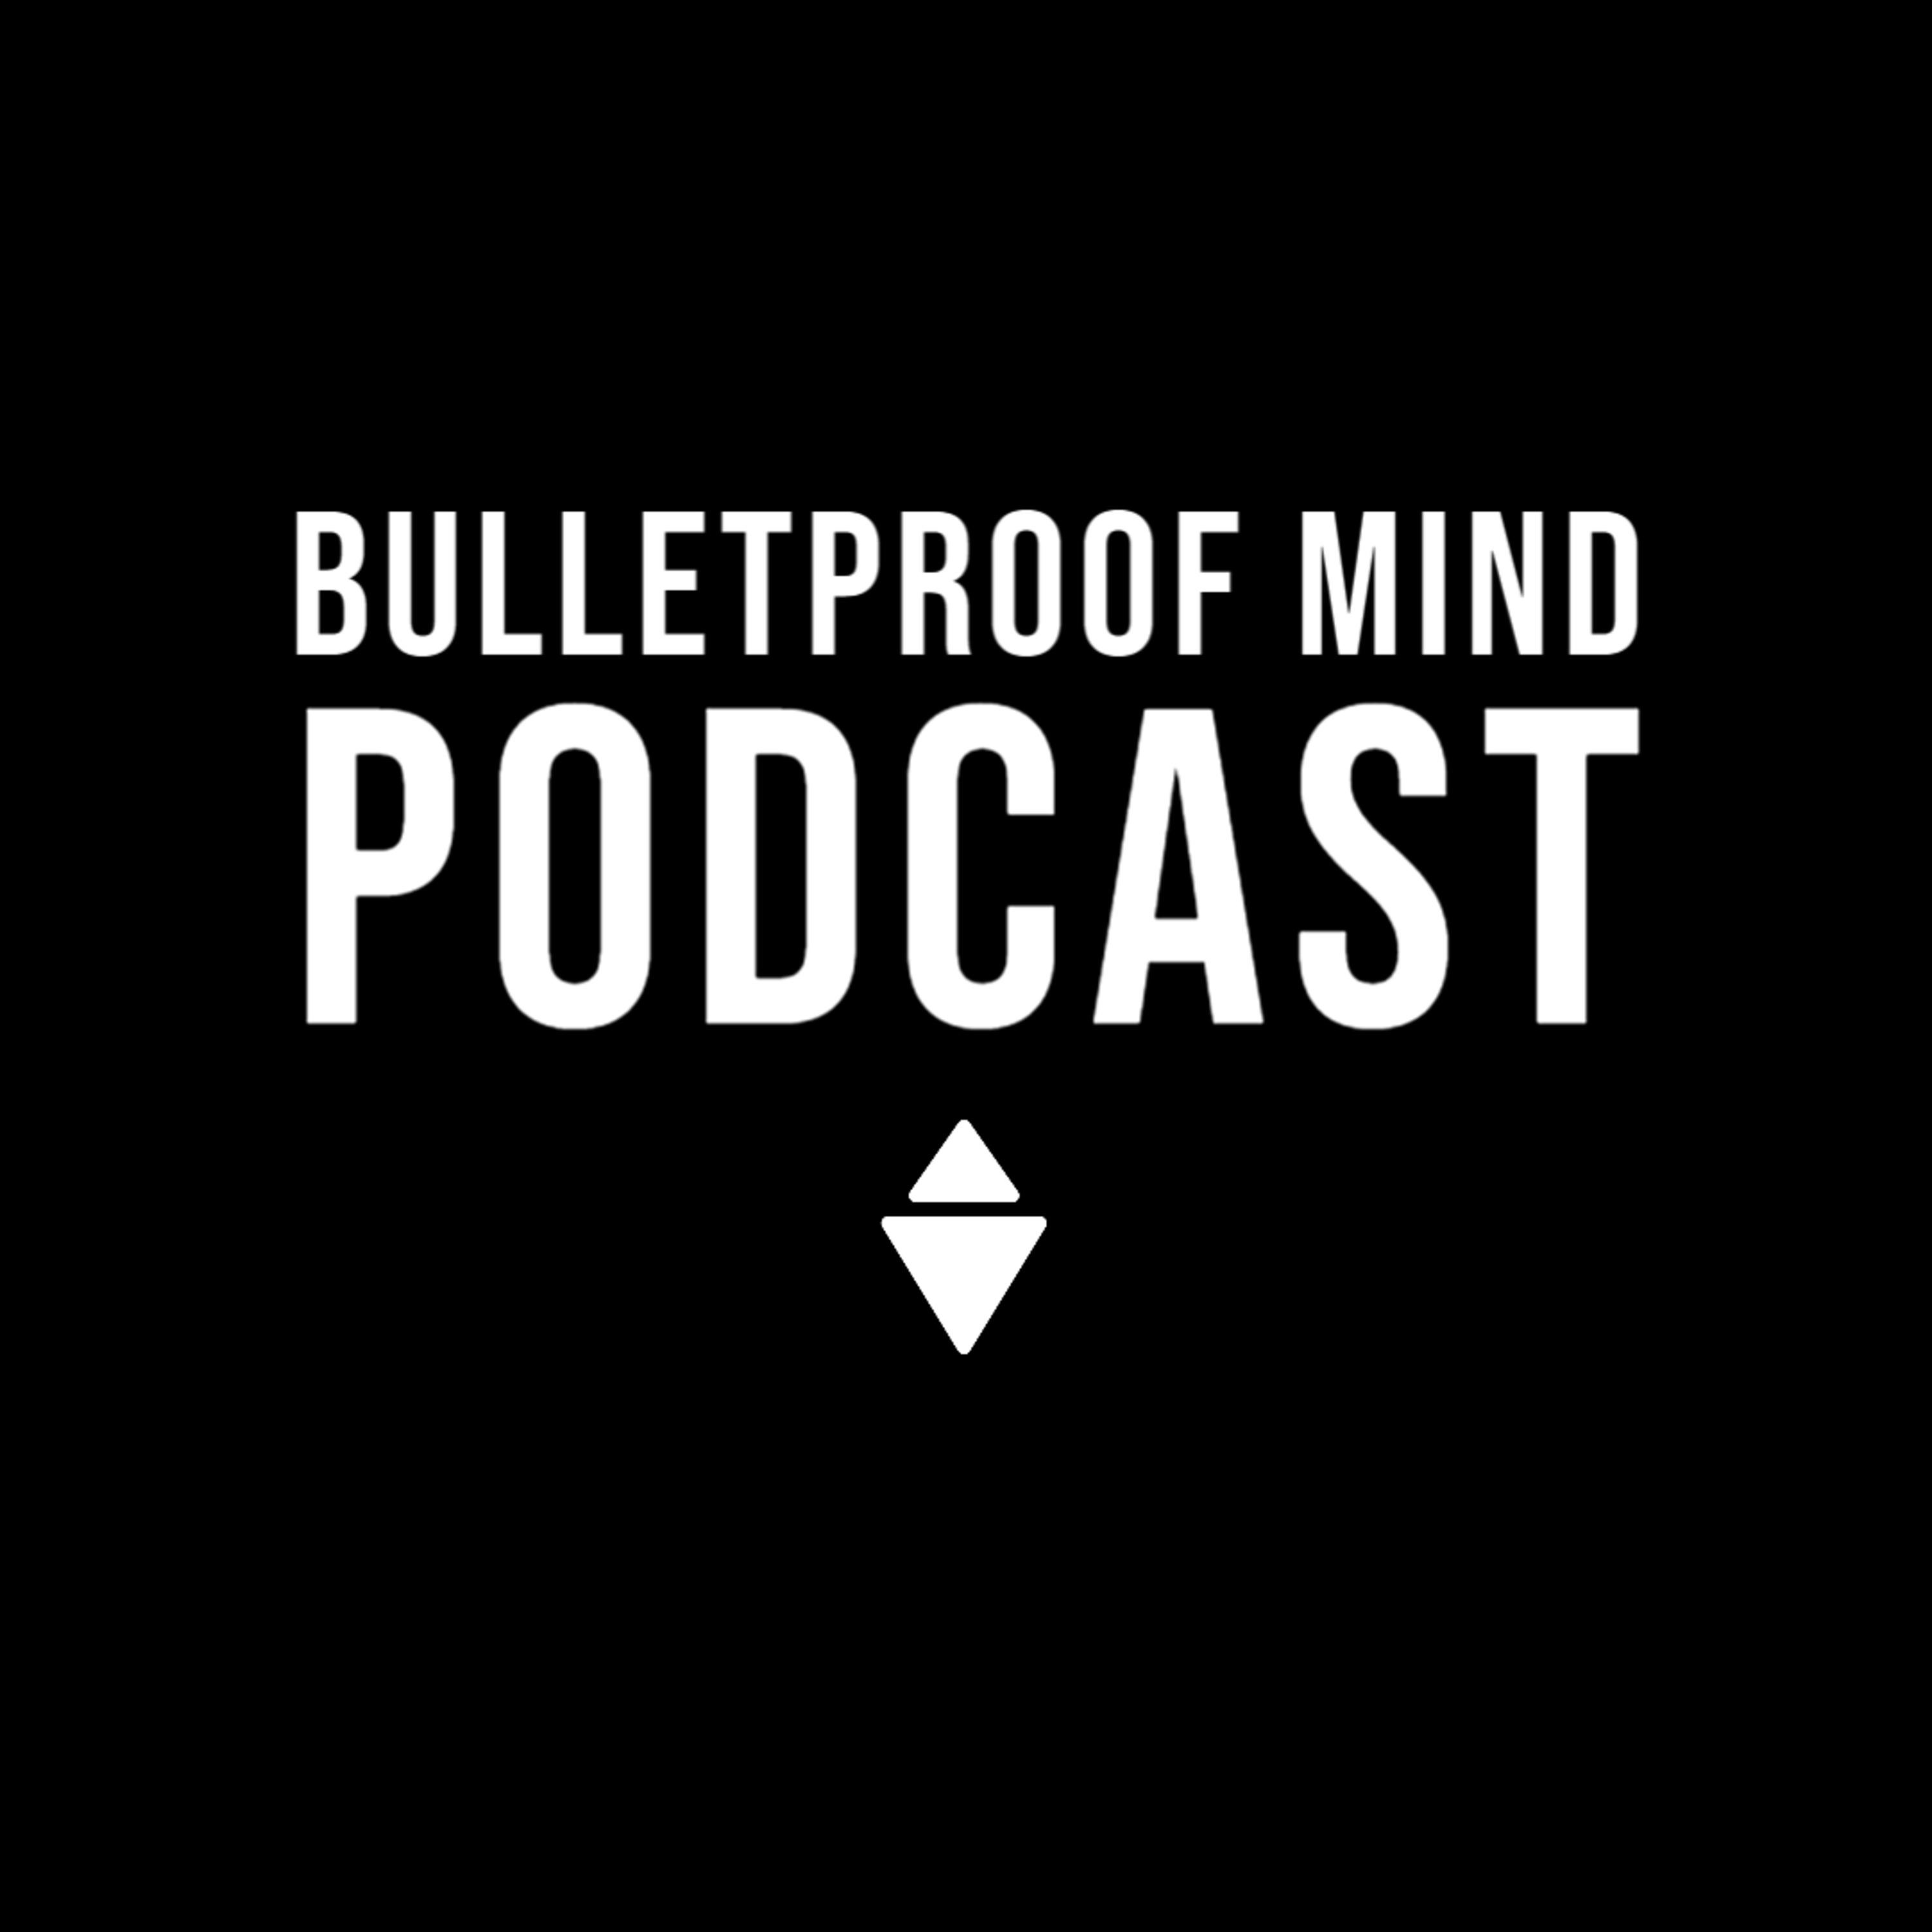 The Bulletproof Mind™ Podcast